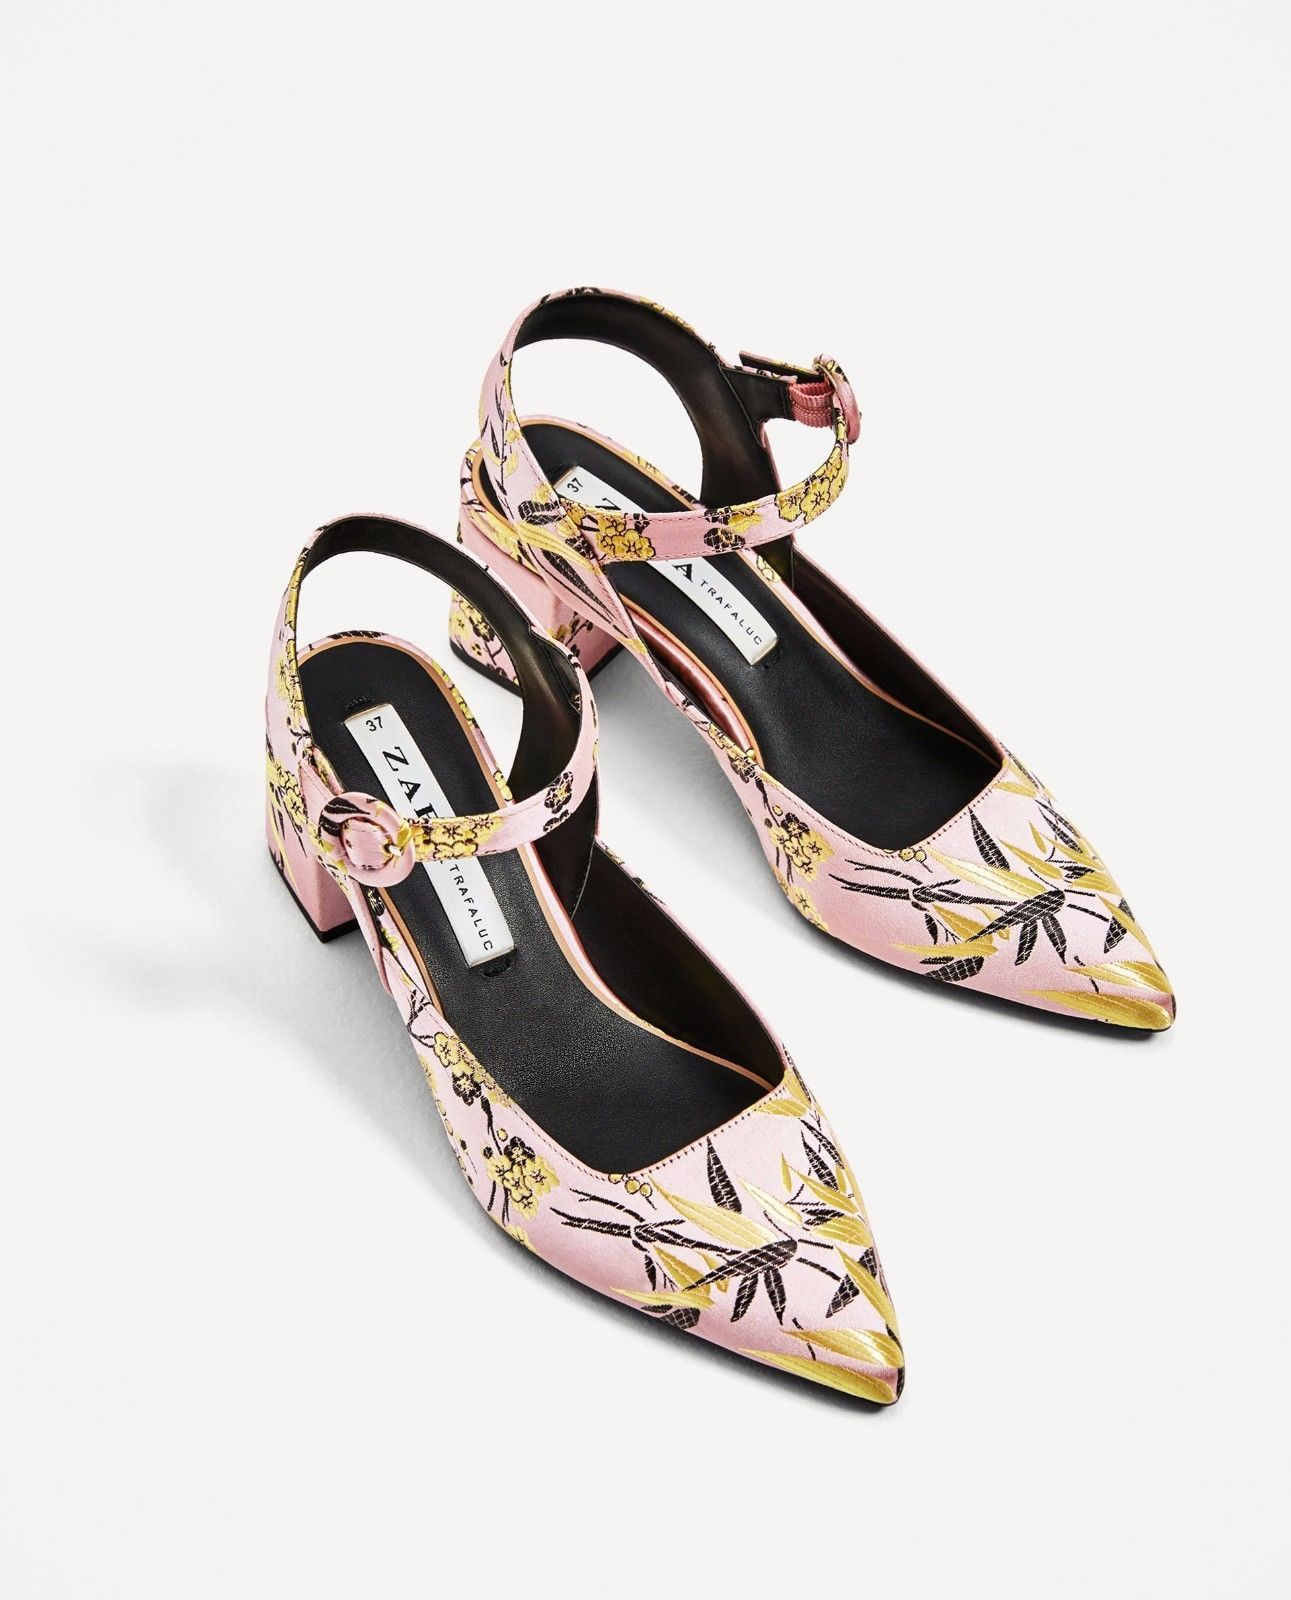 d150b64e50f Zara new embroidered kitten heel slingback shoes pink 7210 201 ...